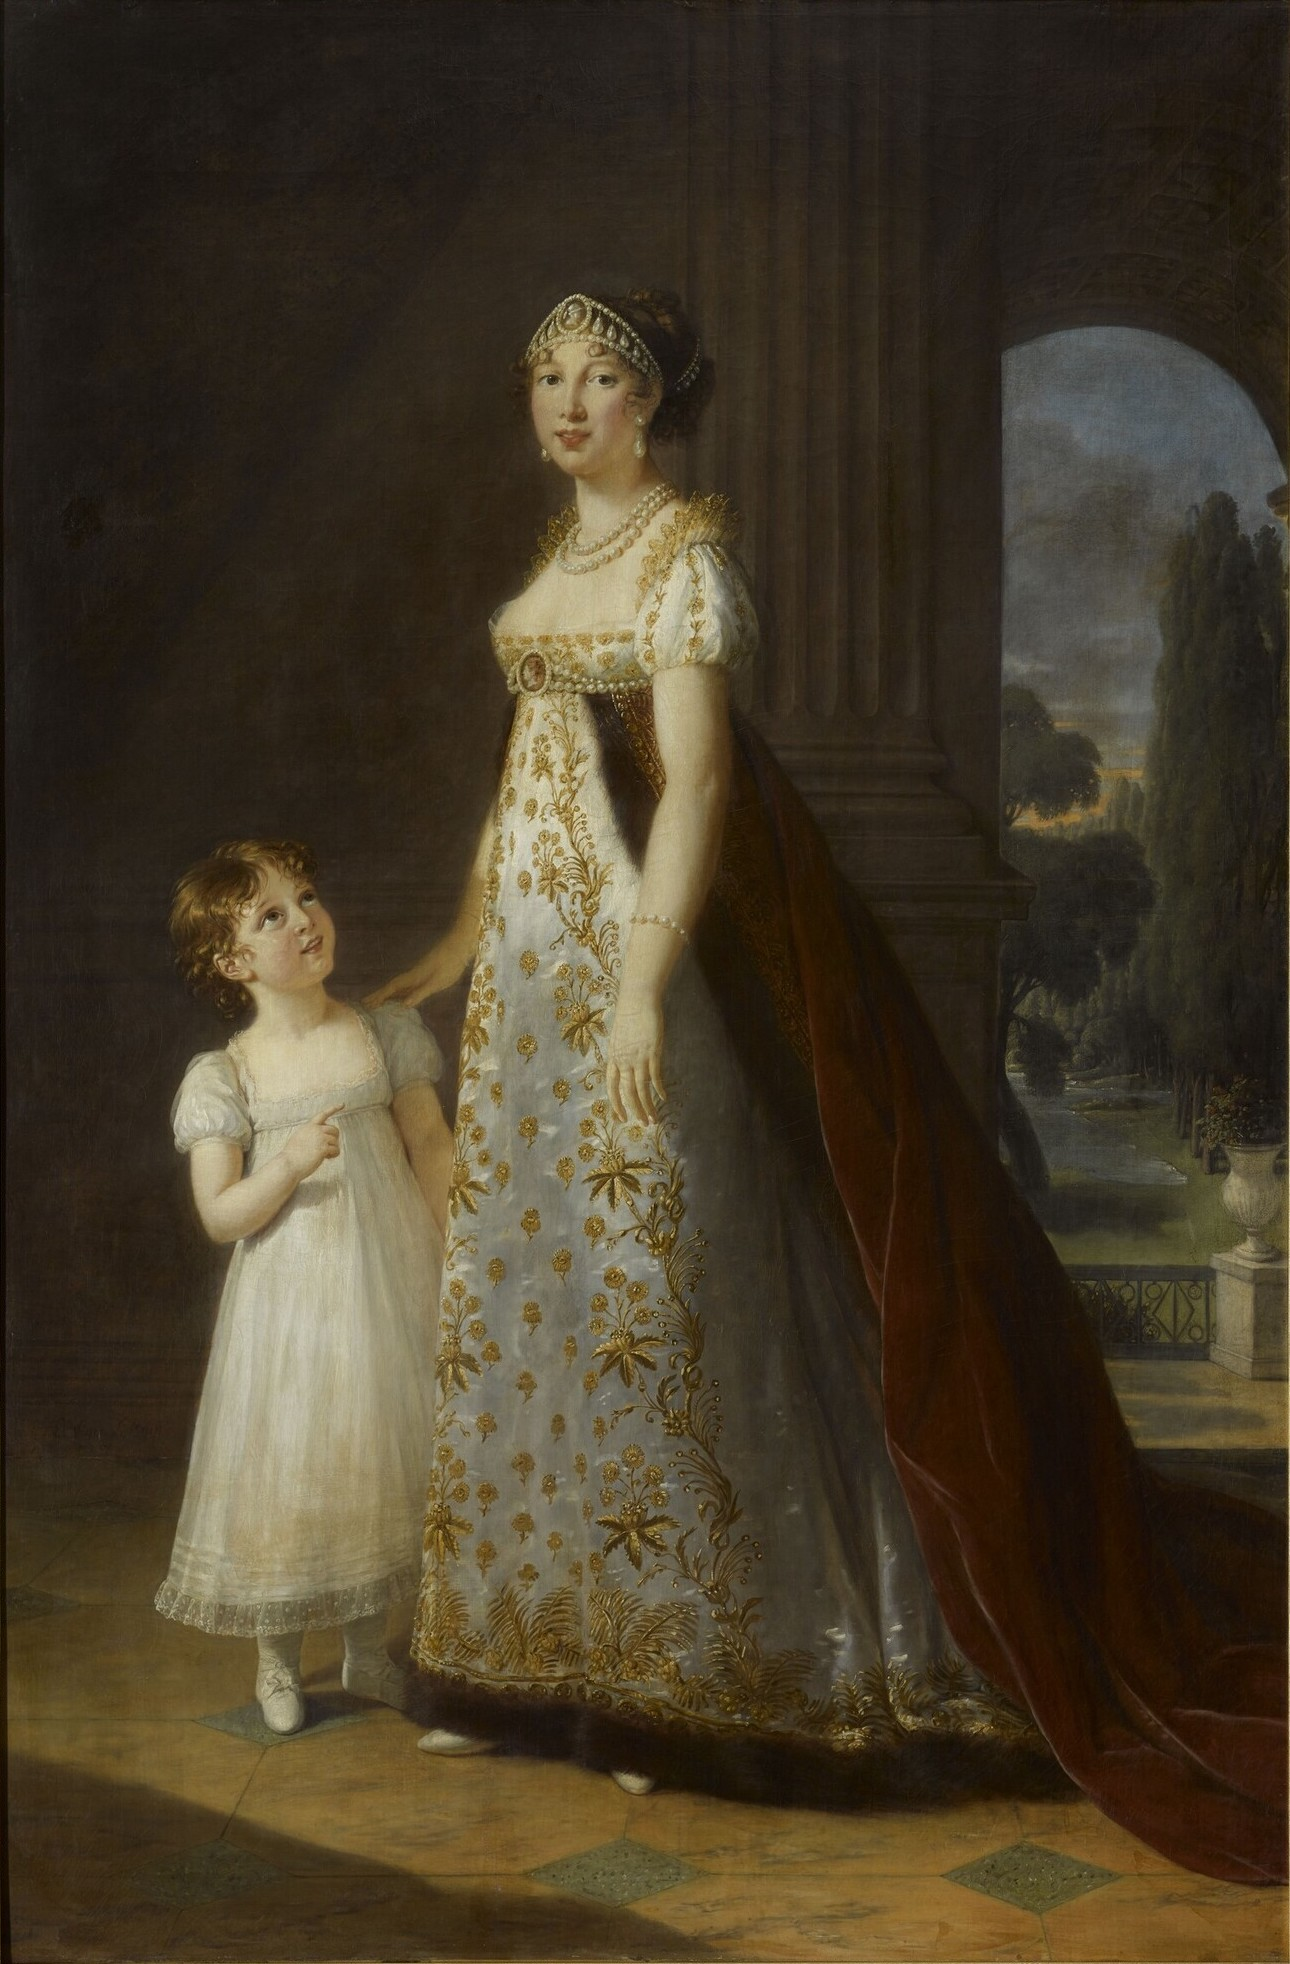 Train of Court Dress Over